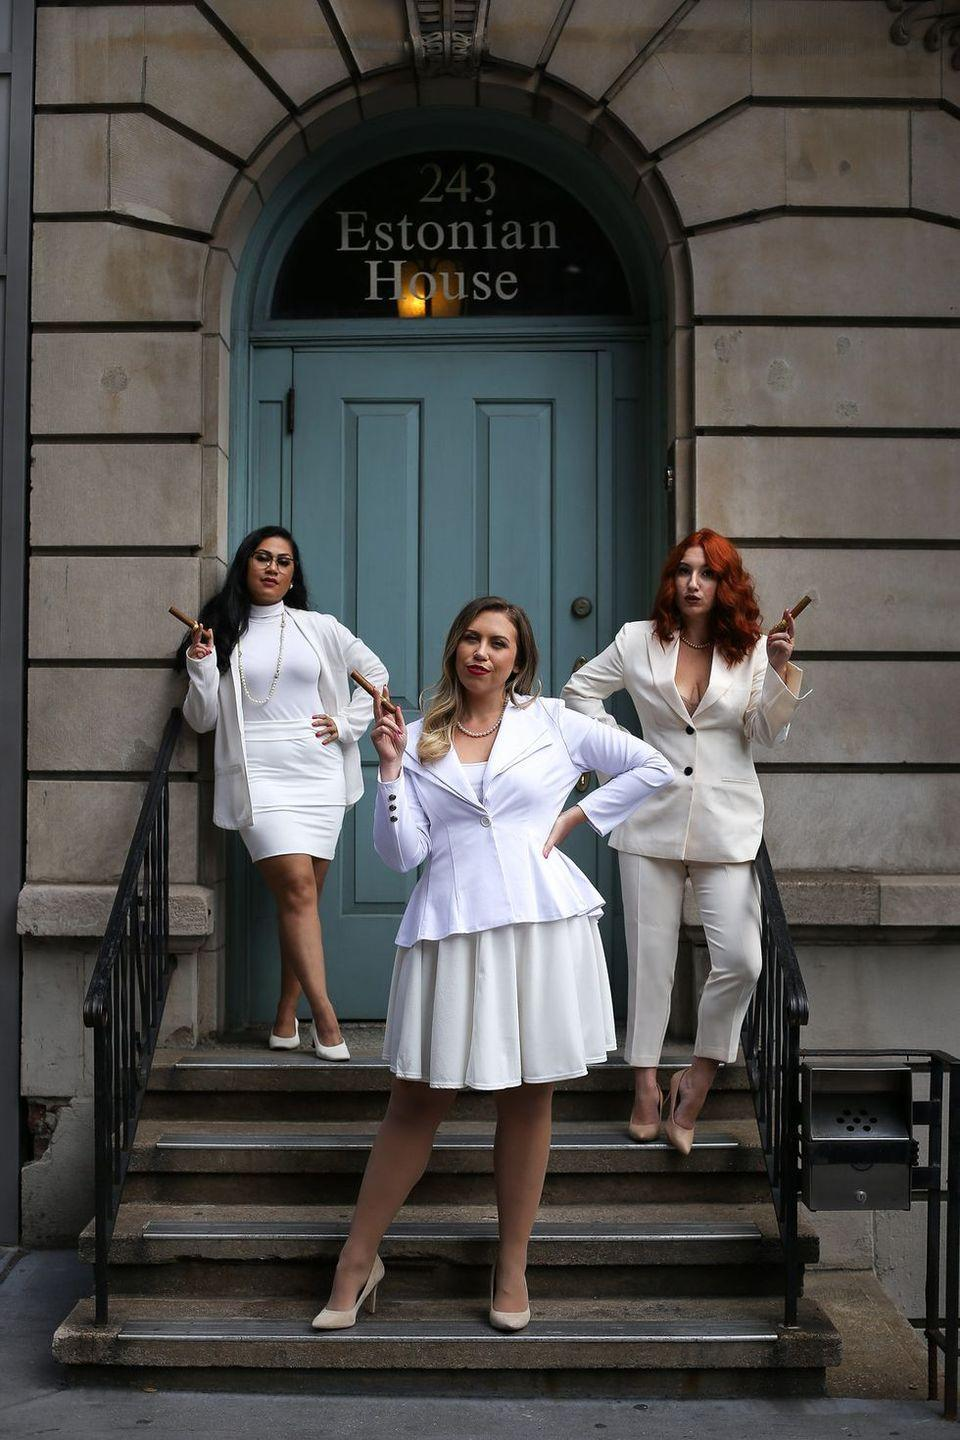 """<p>Step into the iconic, all-white outfits worn by the lead actresses in the 1996 film, <em>The First Wives Club. </em>There are few trios as iconic as Bette Midler, Goldie Hawn, and Diane Keaton, but you'll come pretty close.</p><p><strong>Get the tutorial at <a href=""""http://livingaftermidnite.com/2019/10/group-halloween-costumes-that-will-win-you-best-dressed.html"""" rel=""""nofollow noopener"""" target=""""_blank"""" data-ylk=""""slk:Living After Midnite"""" class=""""link rapid-noclick-resp"""">Living After Midnite</a>.</strong></p><p><strong><a class=""""link rapid-noclick-resp"""" href=""""https://go.redirectingat.com?id=74968X1596630&url=https%3A%2F%2Fwww.walmart.com%2Fsearch%2F%3Fquery%3Dwhite%2Bblazers&sref=https%3A%2F%2Fwww.thepioneerwoman.com%2Fhome-lifestyle%2Fcrafts-diy%2Fg37066817%2Fhalloween-costumes-for-3-people%2F"""" rel=""""nofollow noopener"""" target=""""_blank"""" data-ylk=""""slk:SHOP WHITE BLAZERS"""">SHOP WHITE BLAZERS</a><br></strong></p>"""